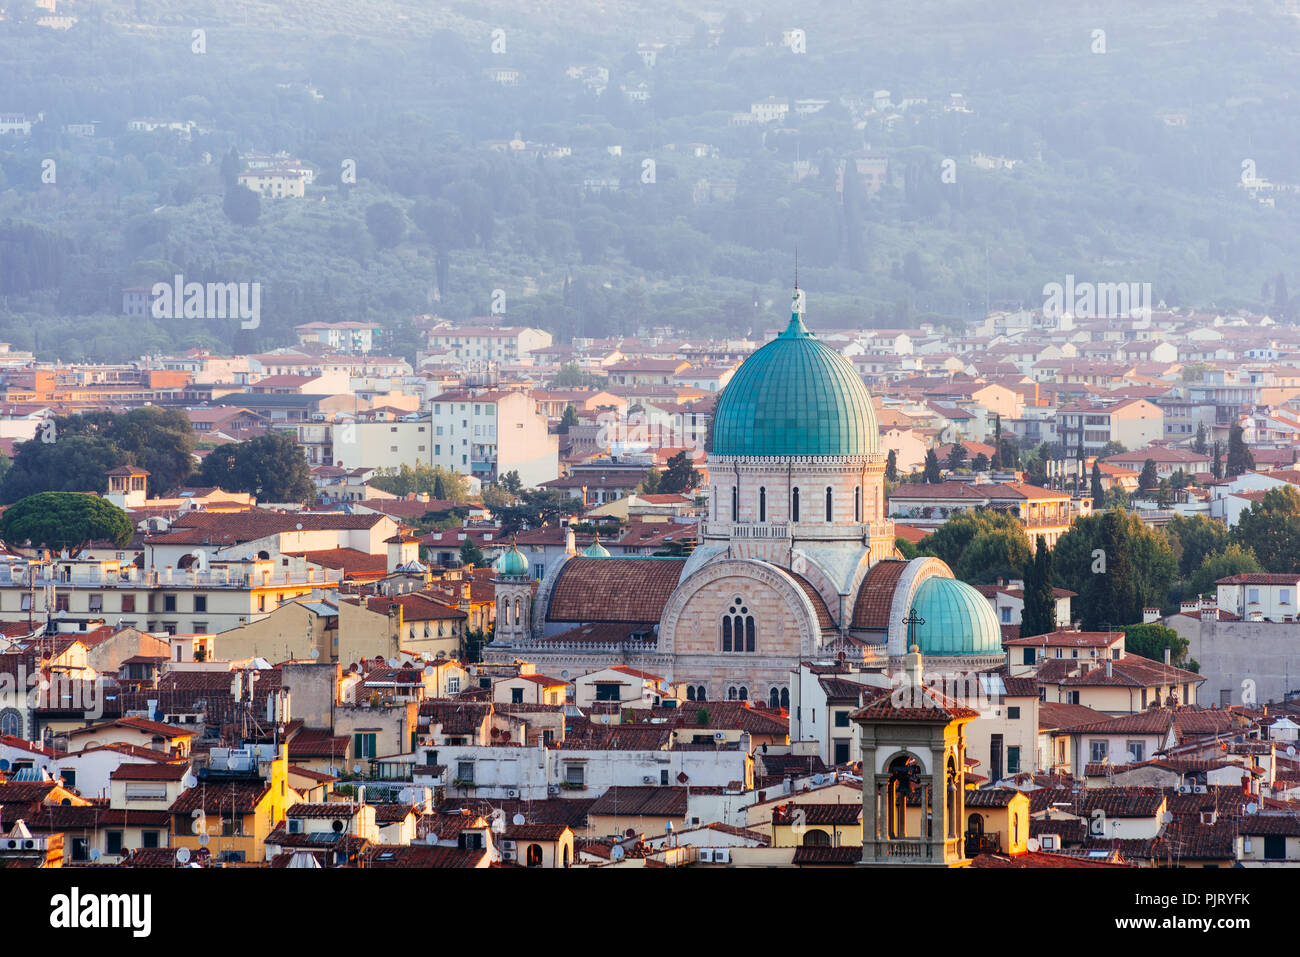 Great Synagogue of Florence at Sunrise - Stock Image